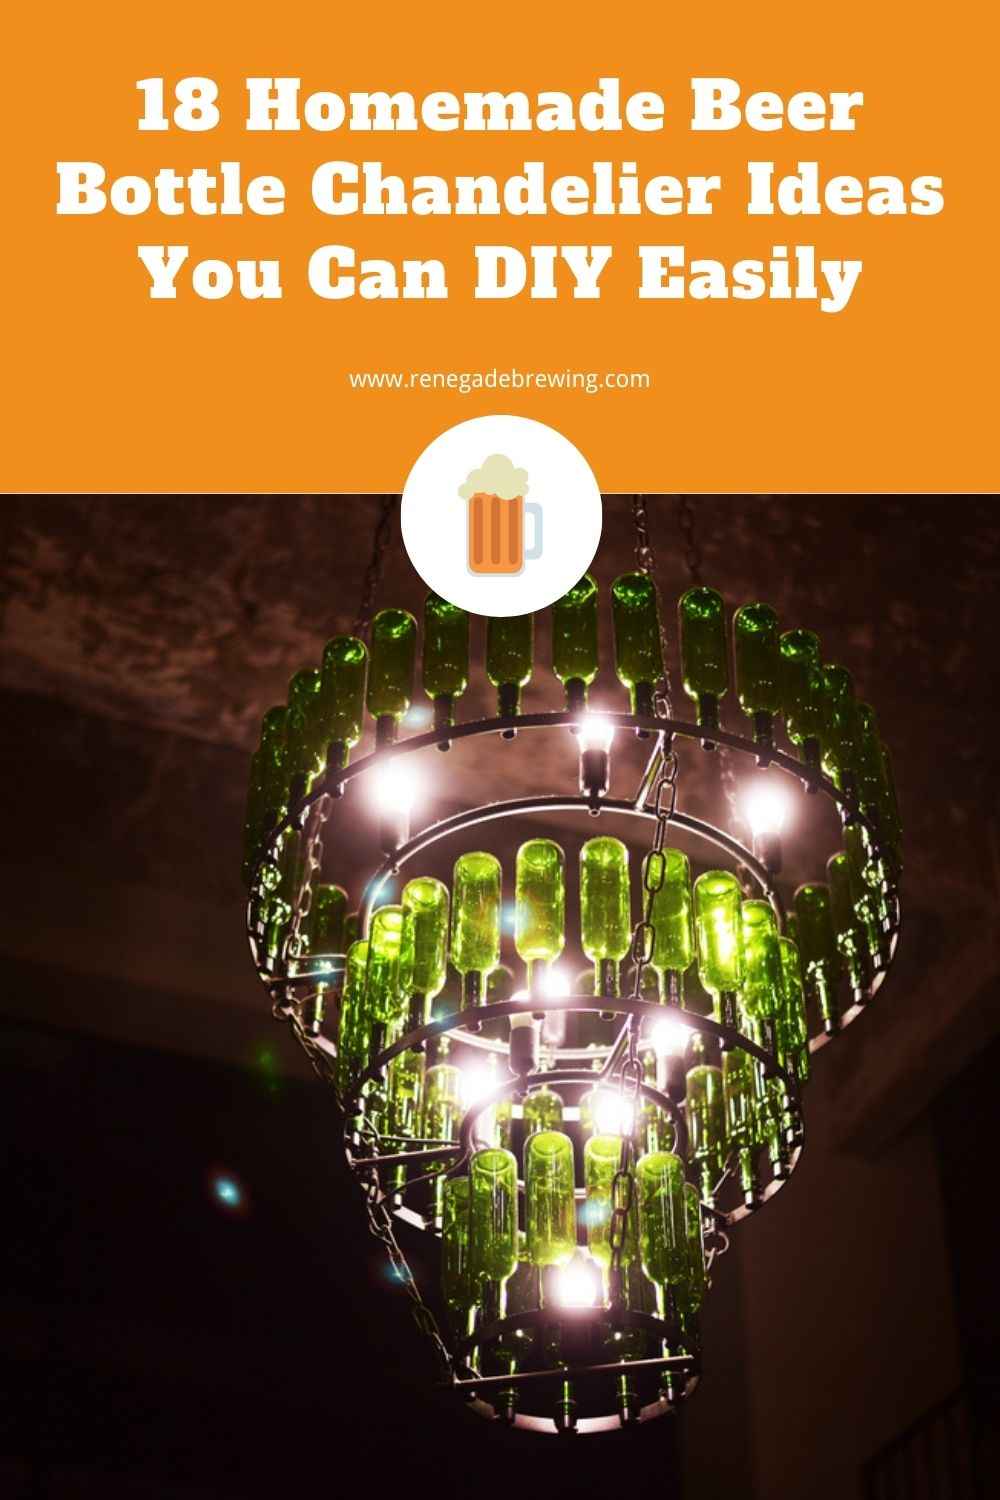 18 Homemade Beer Bottle Chandelier Ideas You Can DIY Easily 2